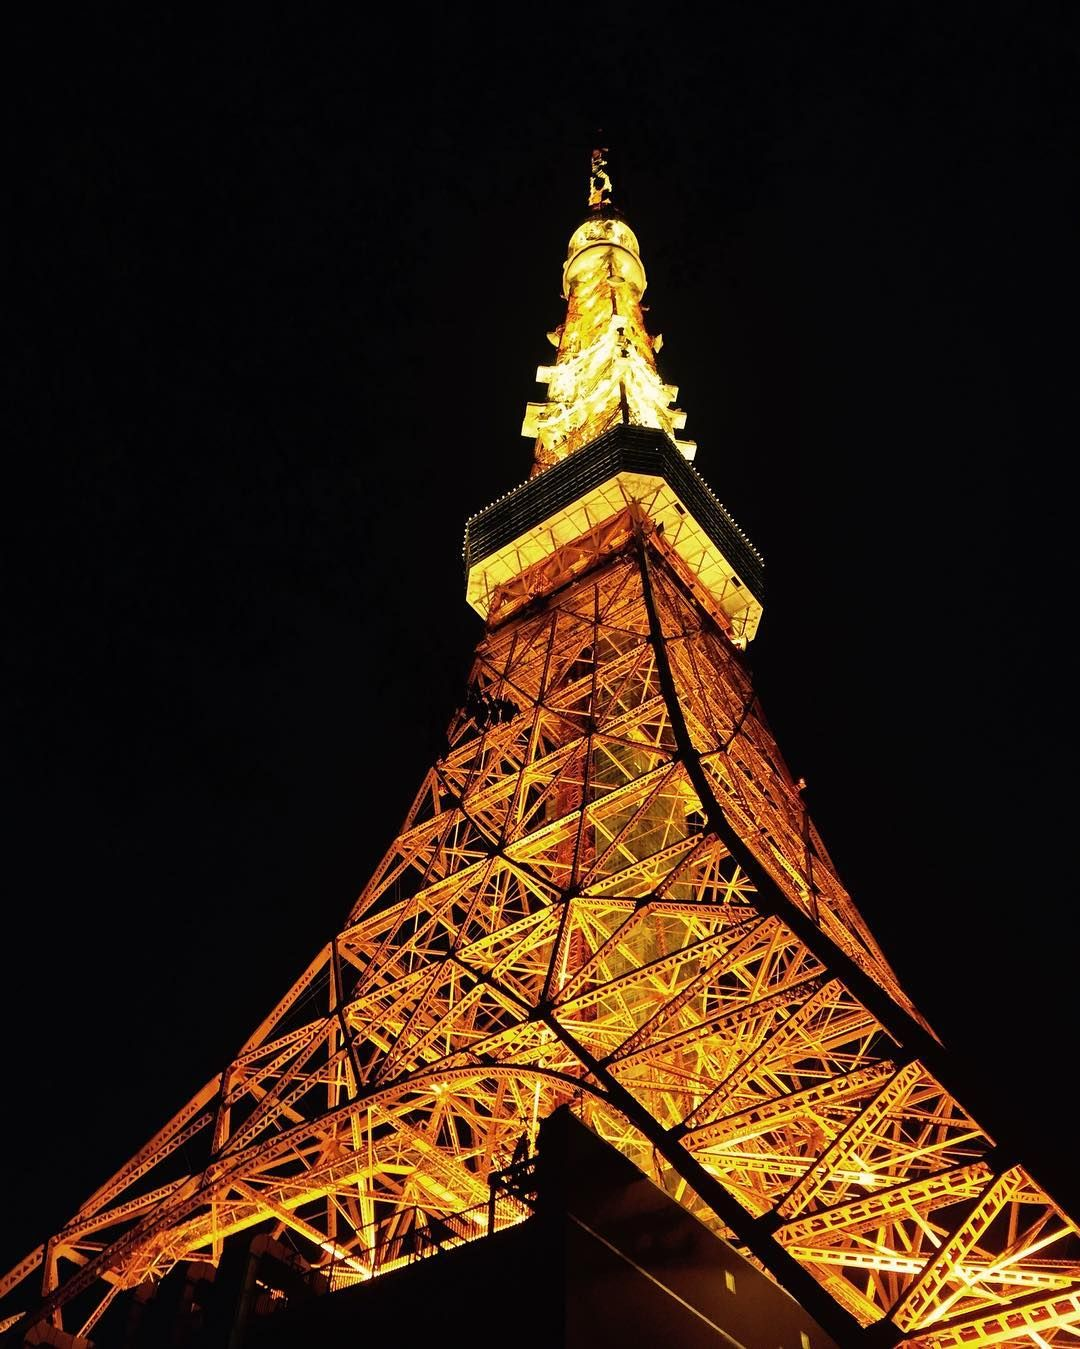 Can't wait to be here again! #tokyo #tokyotower #tokyotowerview #tokyoatnight #japan #japantrip #japanholiday (by tha_pull_pin)